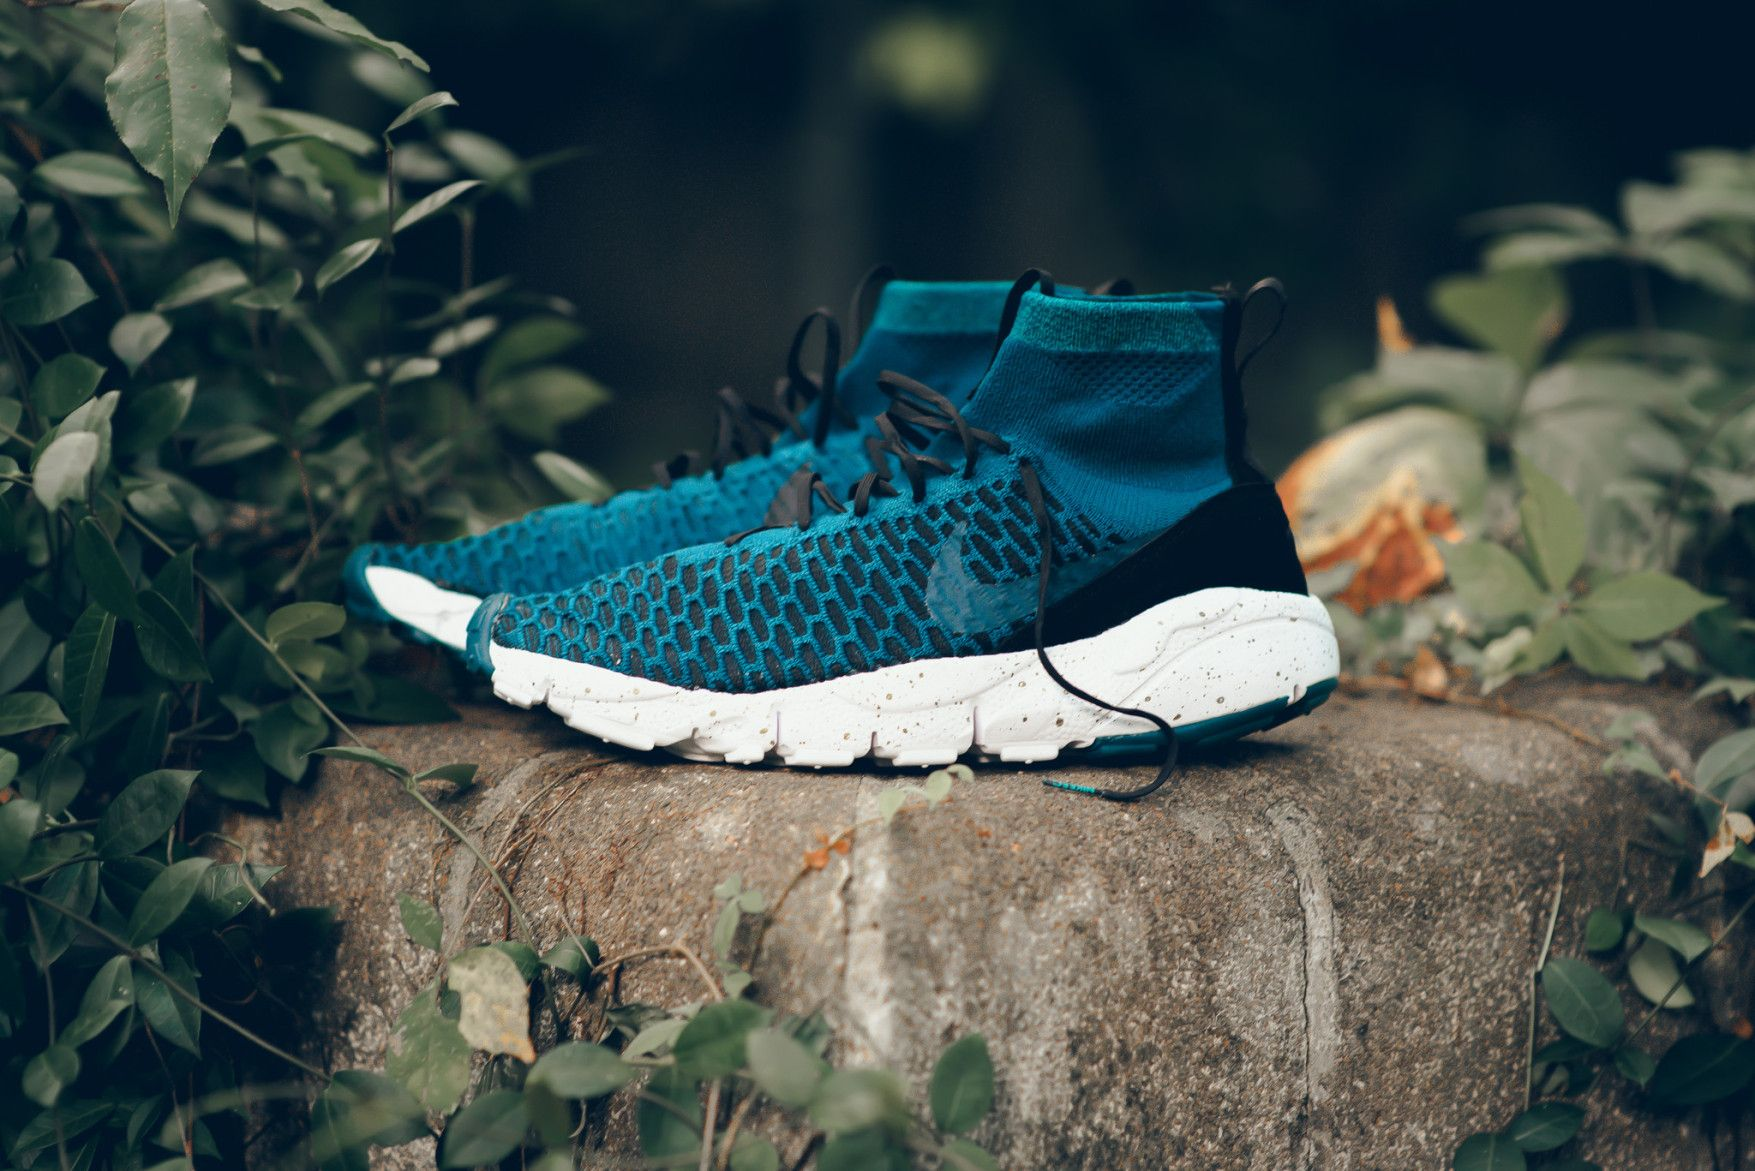 44c9606d6957 近賞 Nike Air Footscape Magista Flyknit F.C.「Midnight Turquoise ...